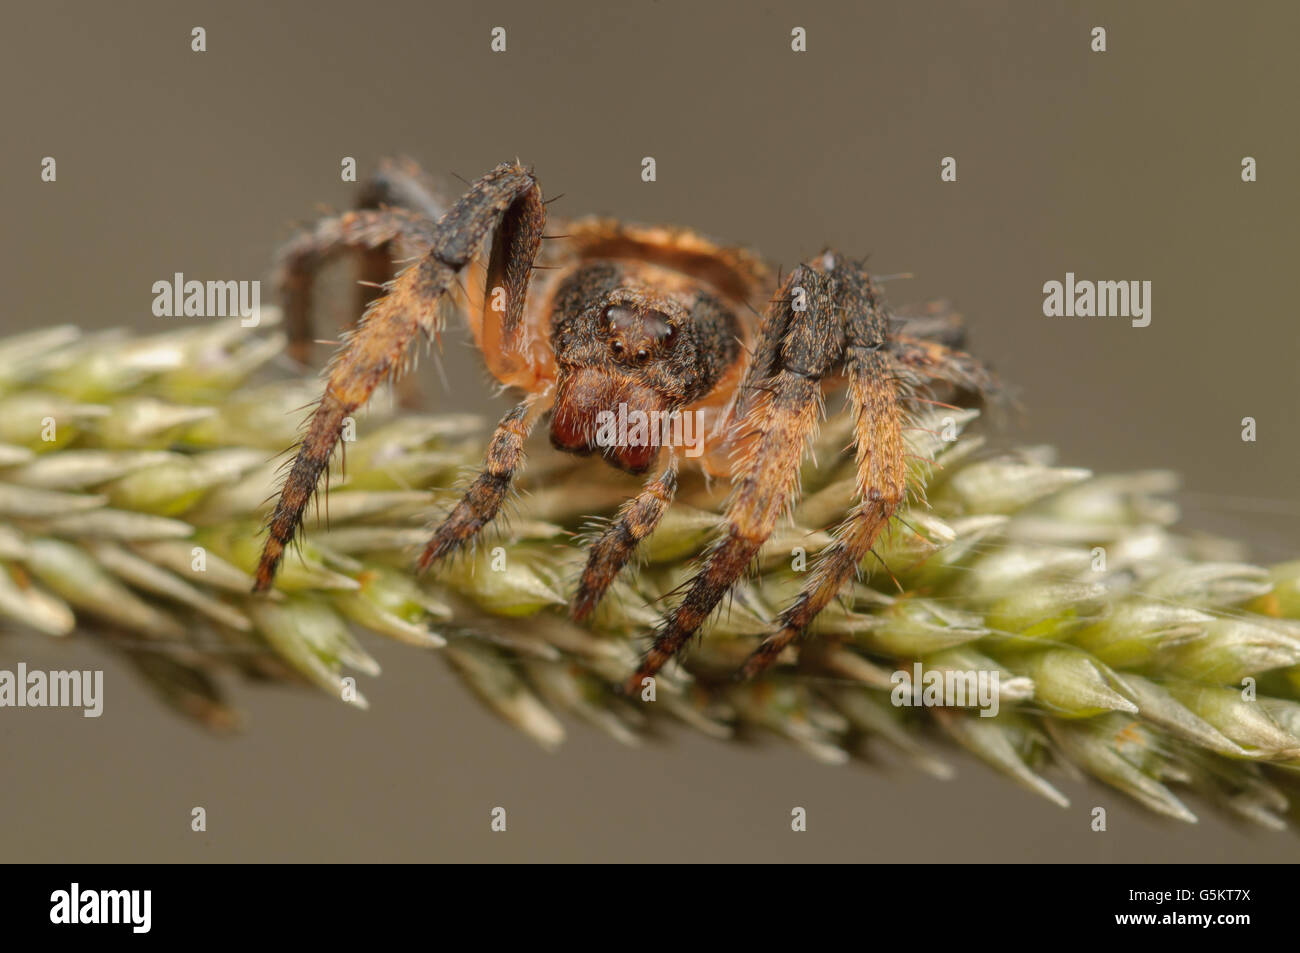 Wraparound spider, Dolophones sp. at Glenbrook, New South Wales, Australia. - Stock Image